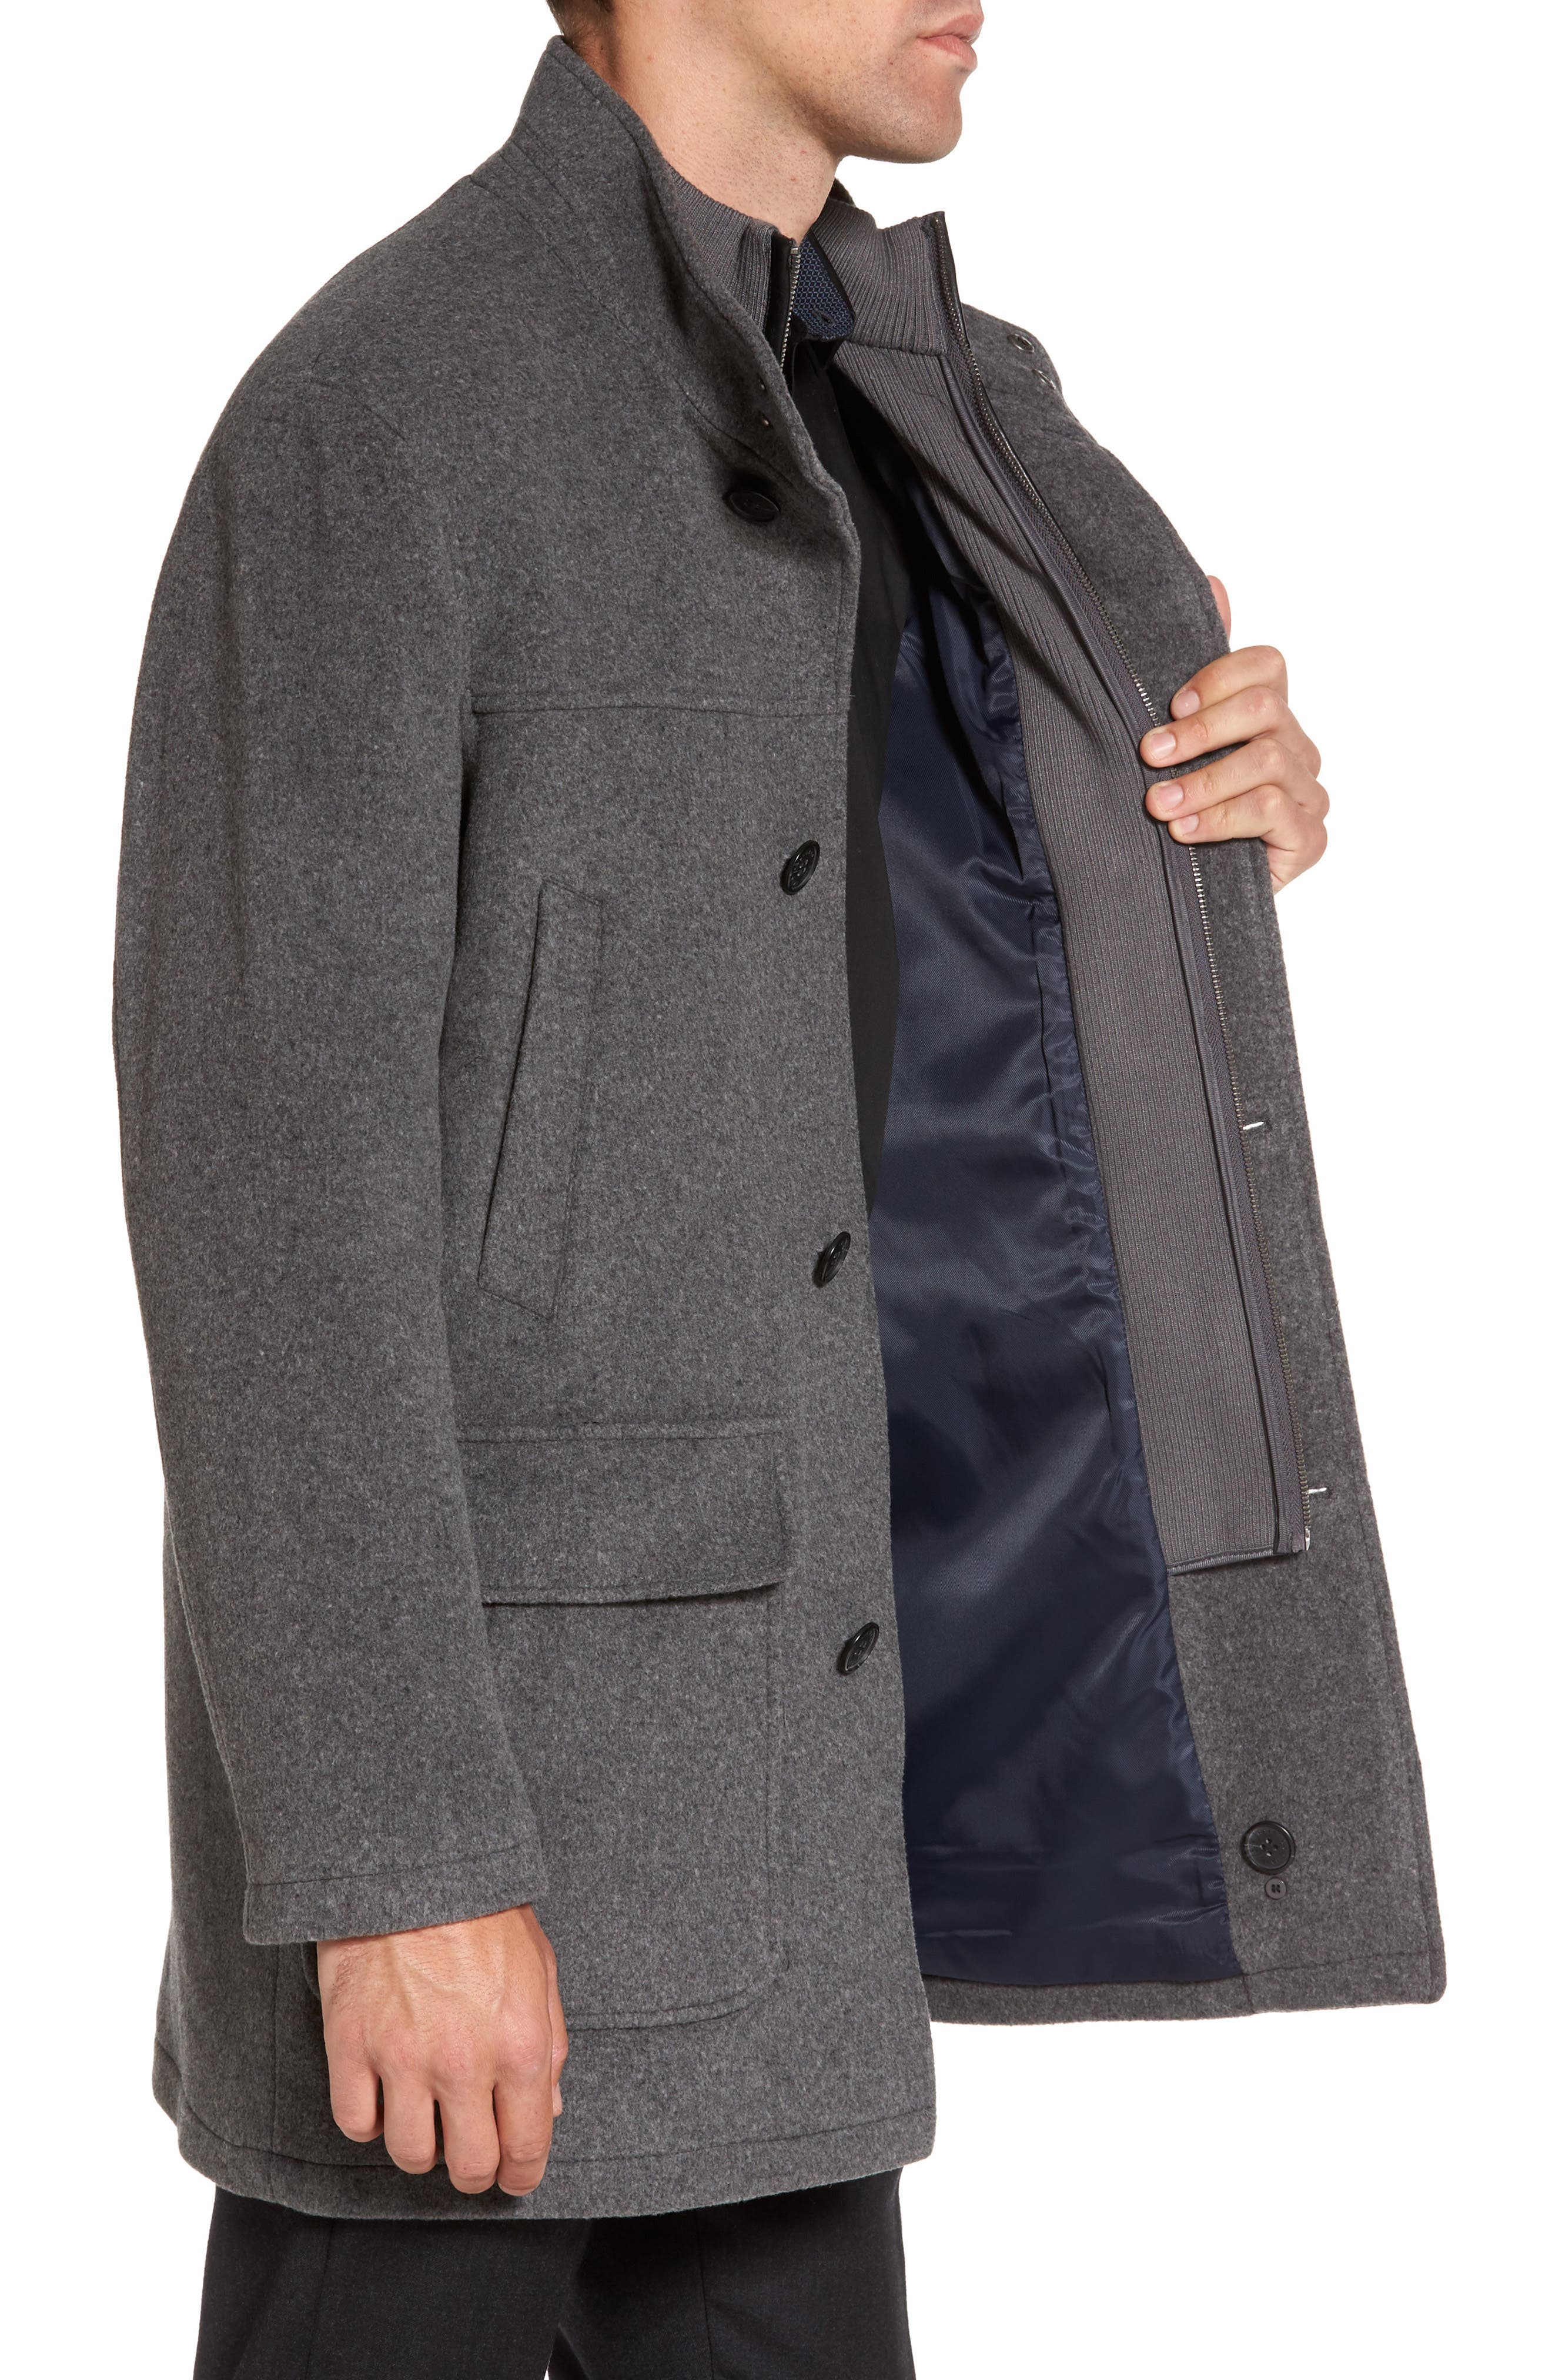 Wool Blend Topcoat with Inset Bib,                             Alternate thumbnail 4, color,                             Light Grey